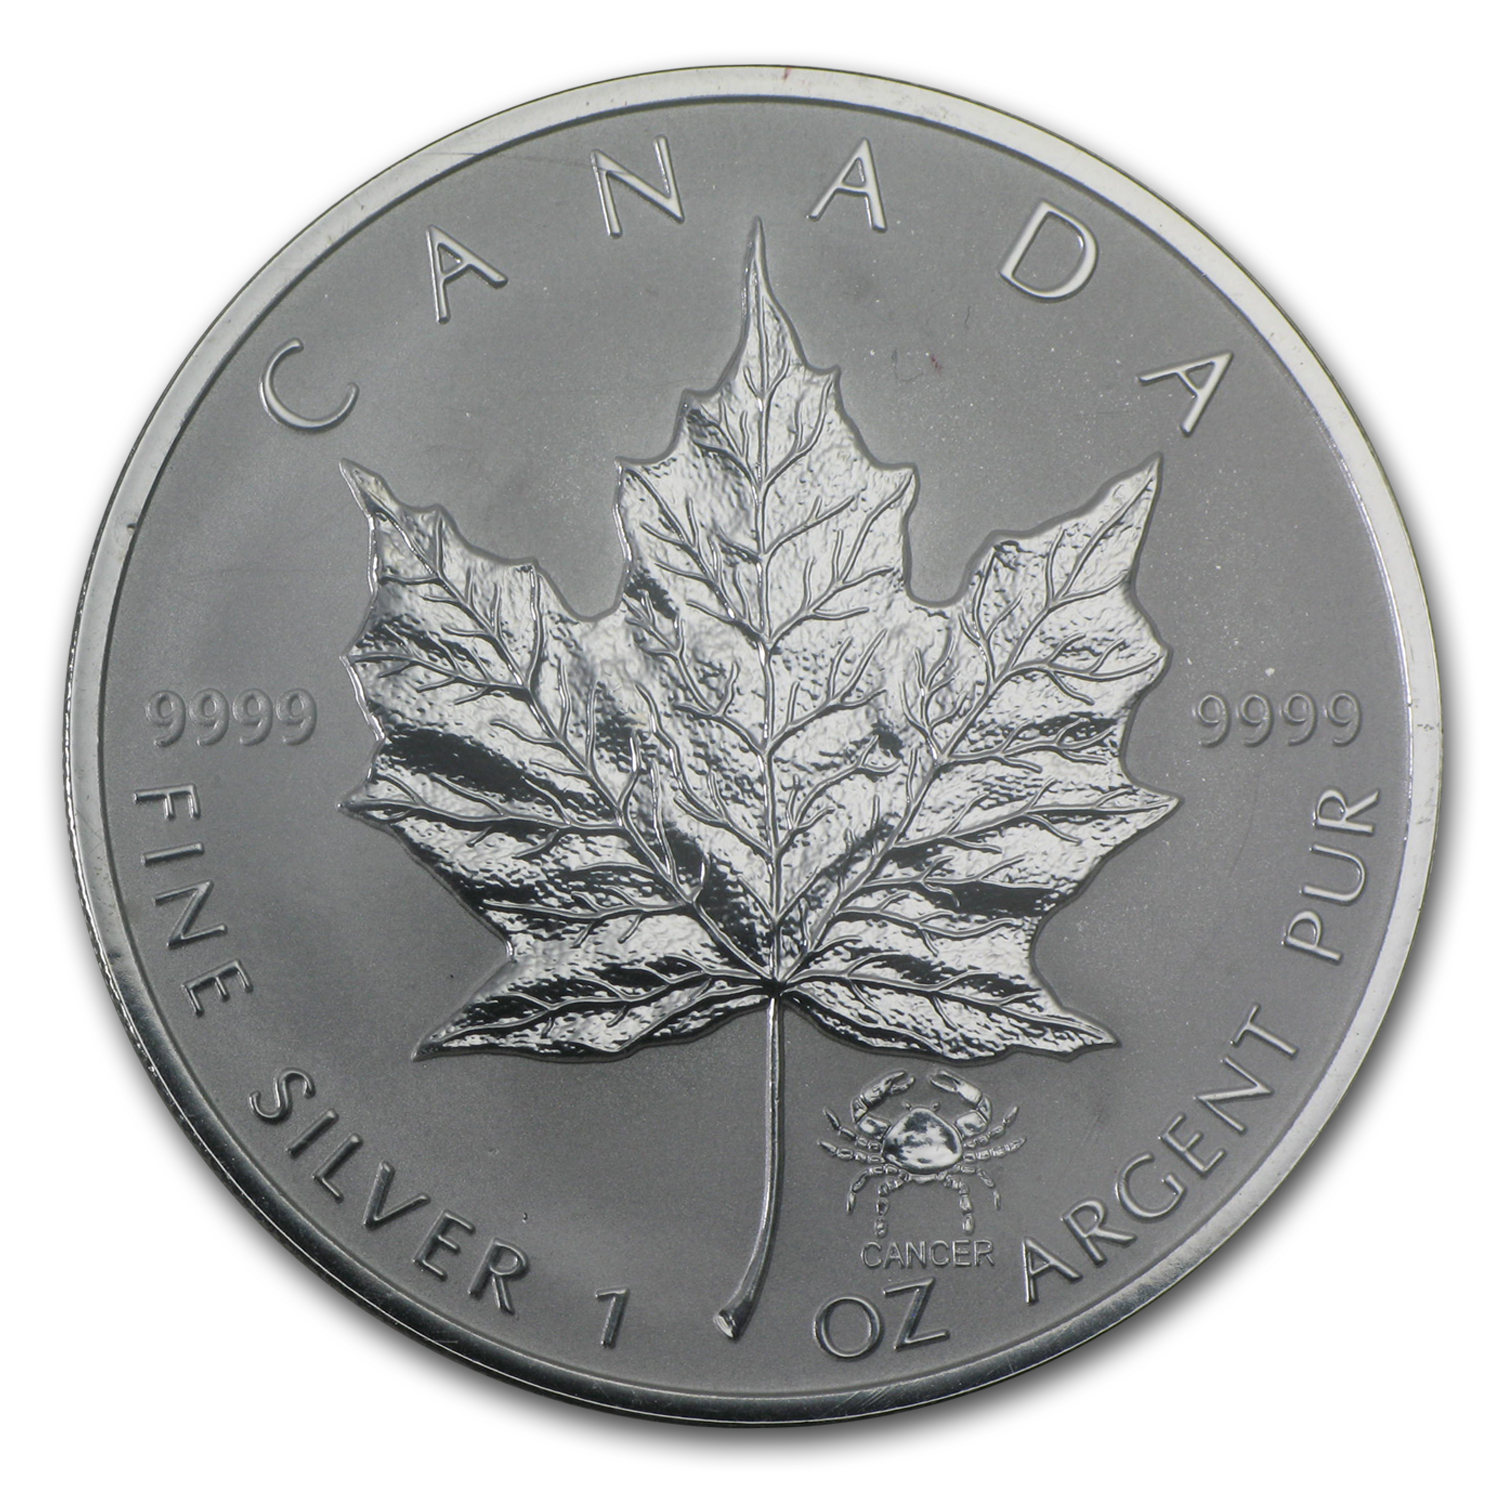 2004 1 oz Silver Canadian Maple Leaf - Cancer Zodiac Privy